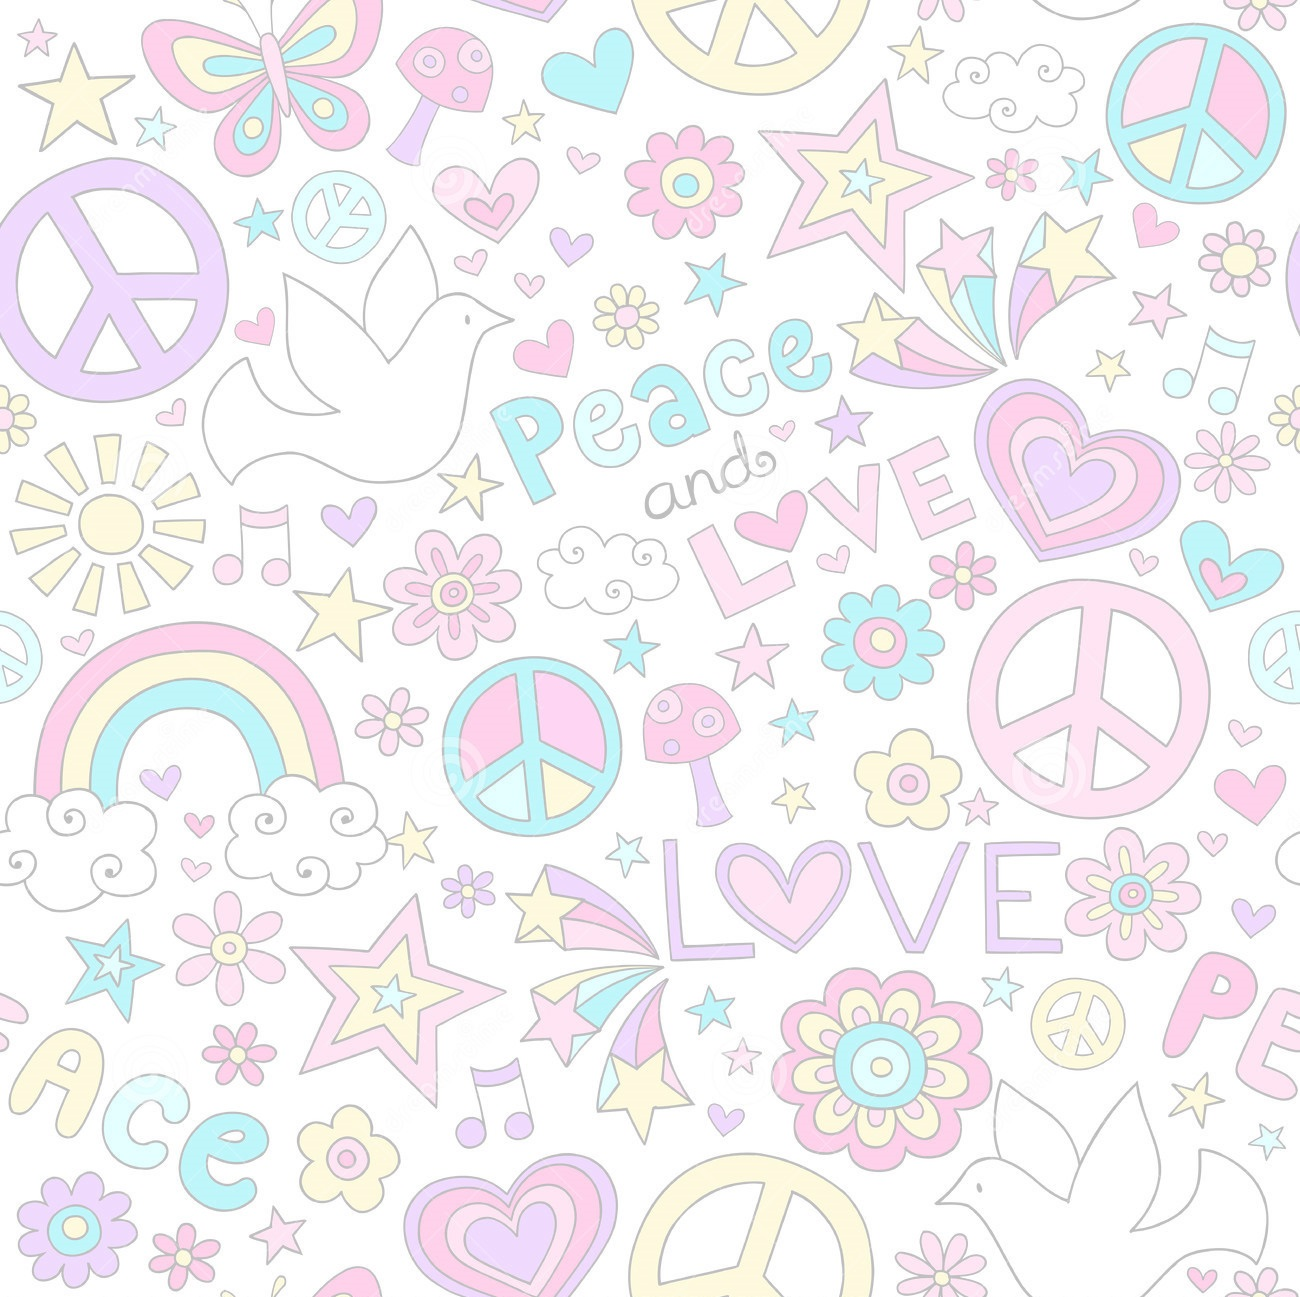 peace-and-love-photography-cool-rainbow-doodles-seamless-pattern-vector-royalty-free-stock-wallpaper-hd